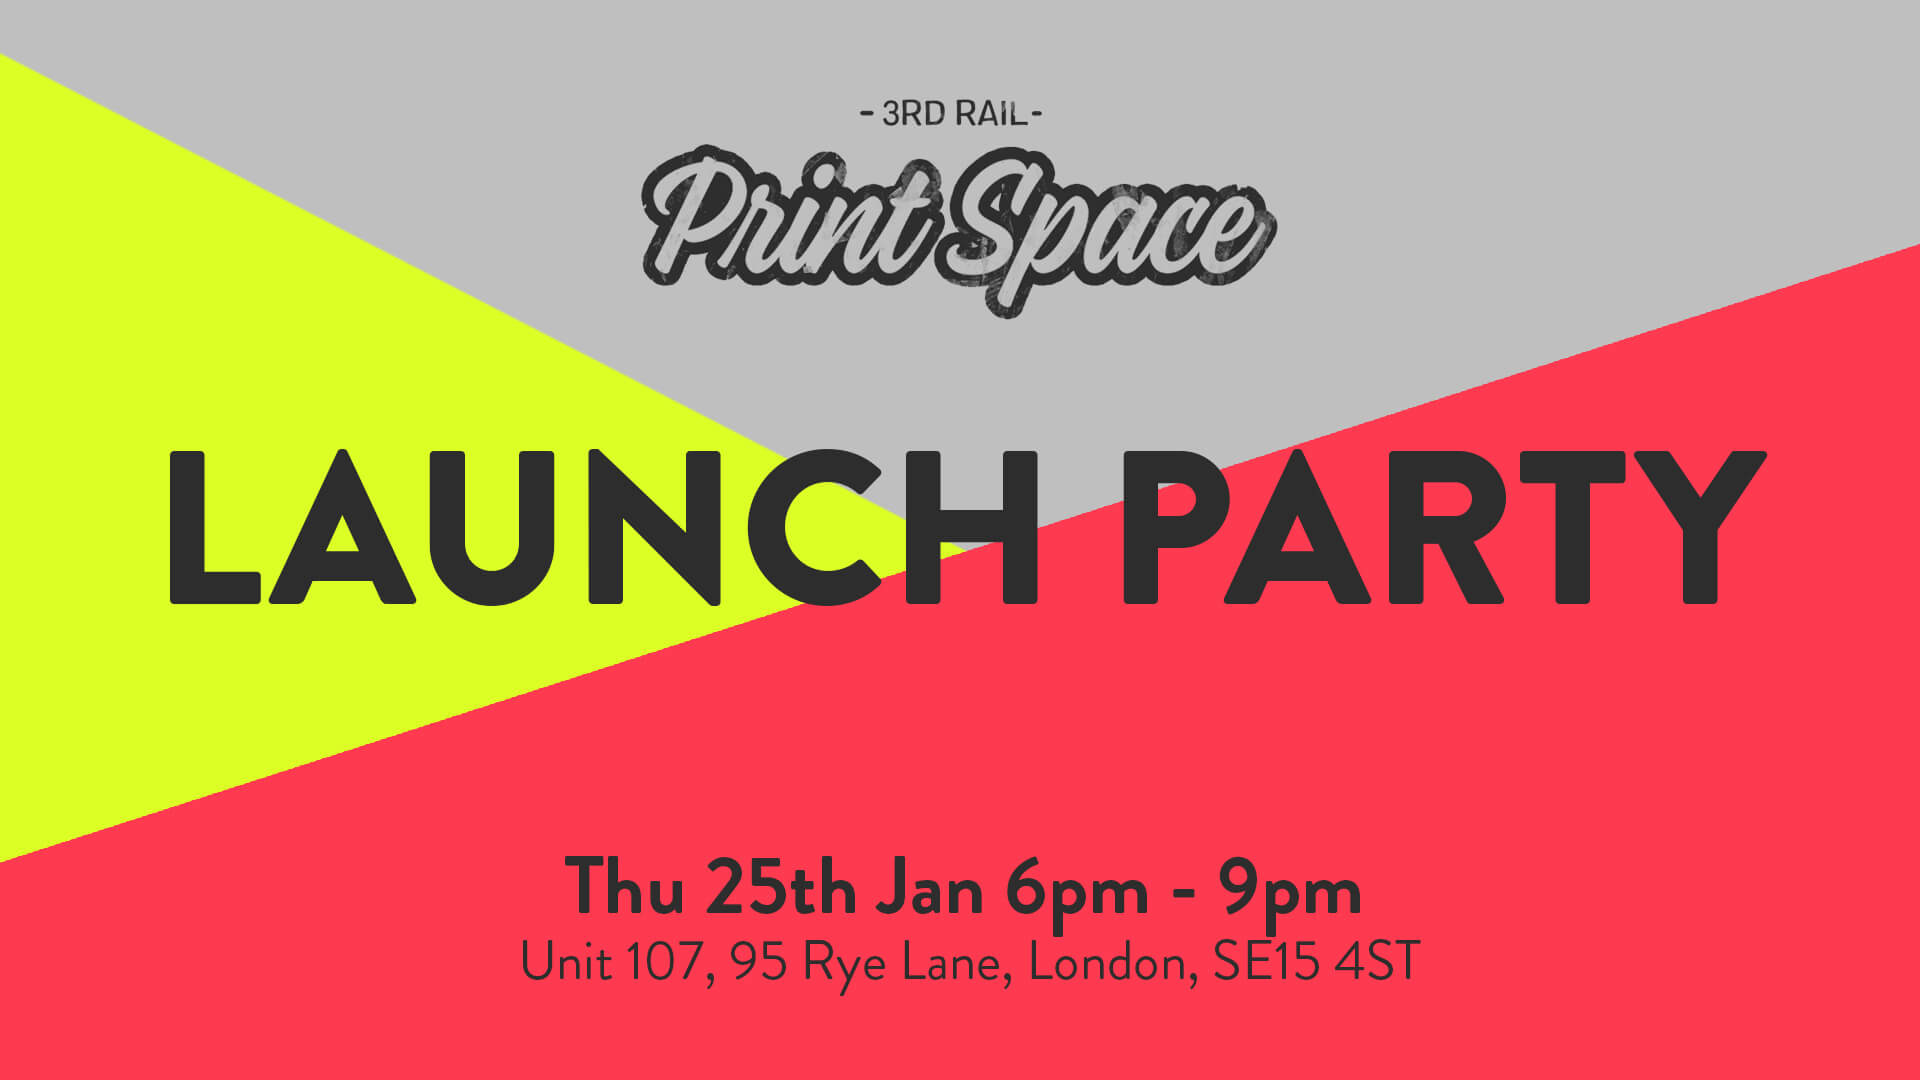 London's Biggest Open Access Screen Printing Studio is Launching!